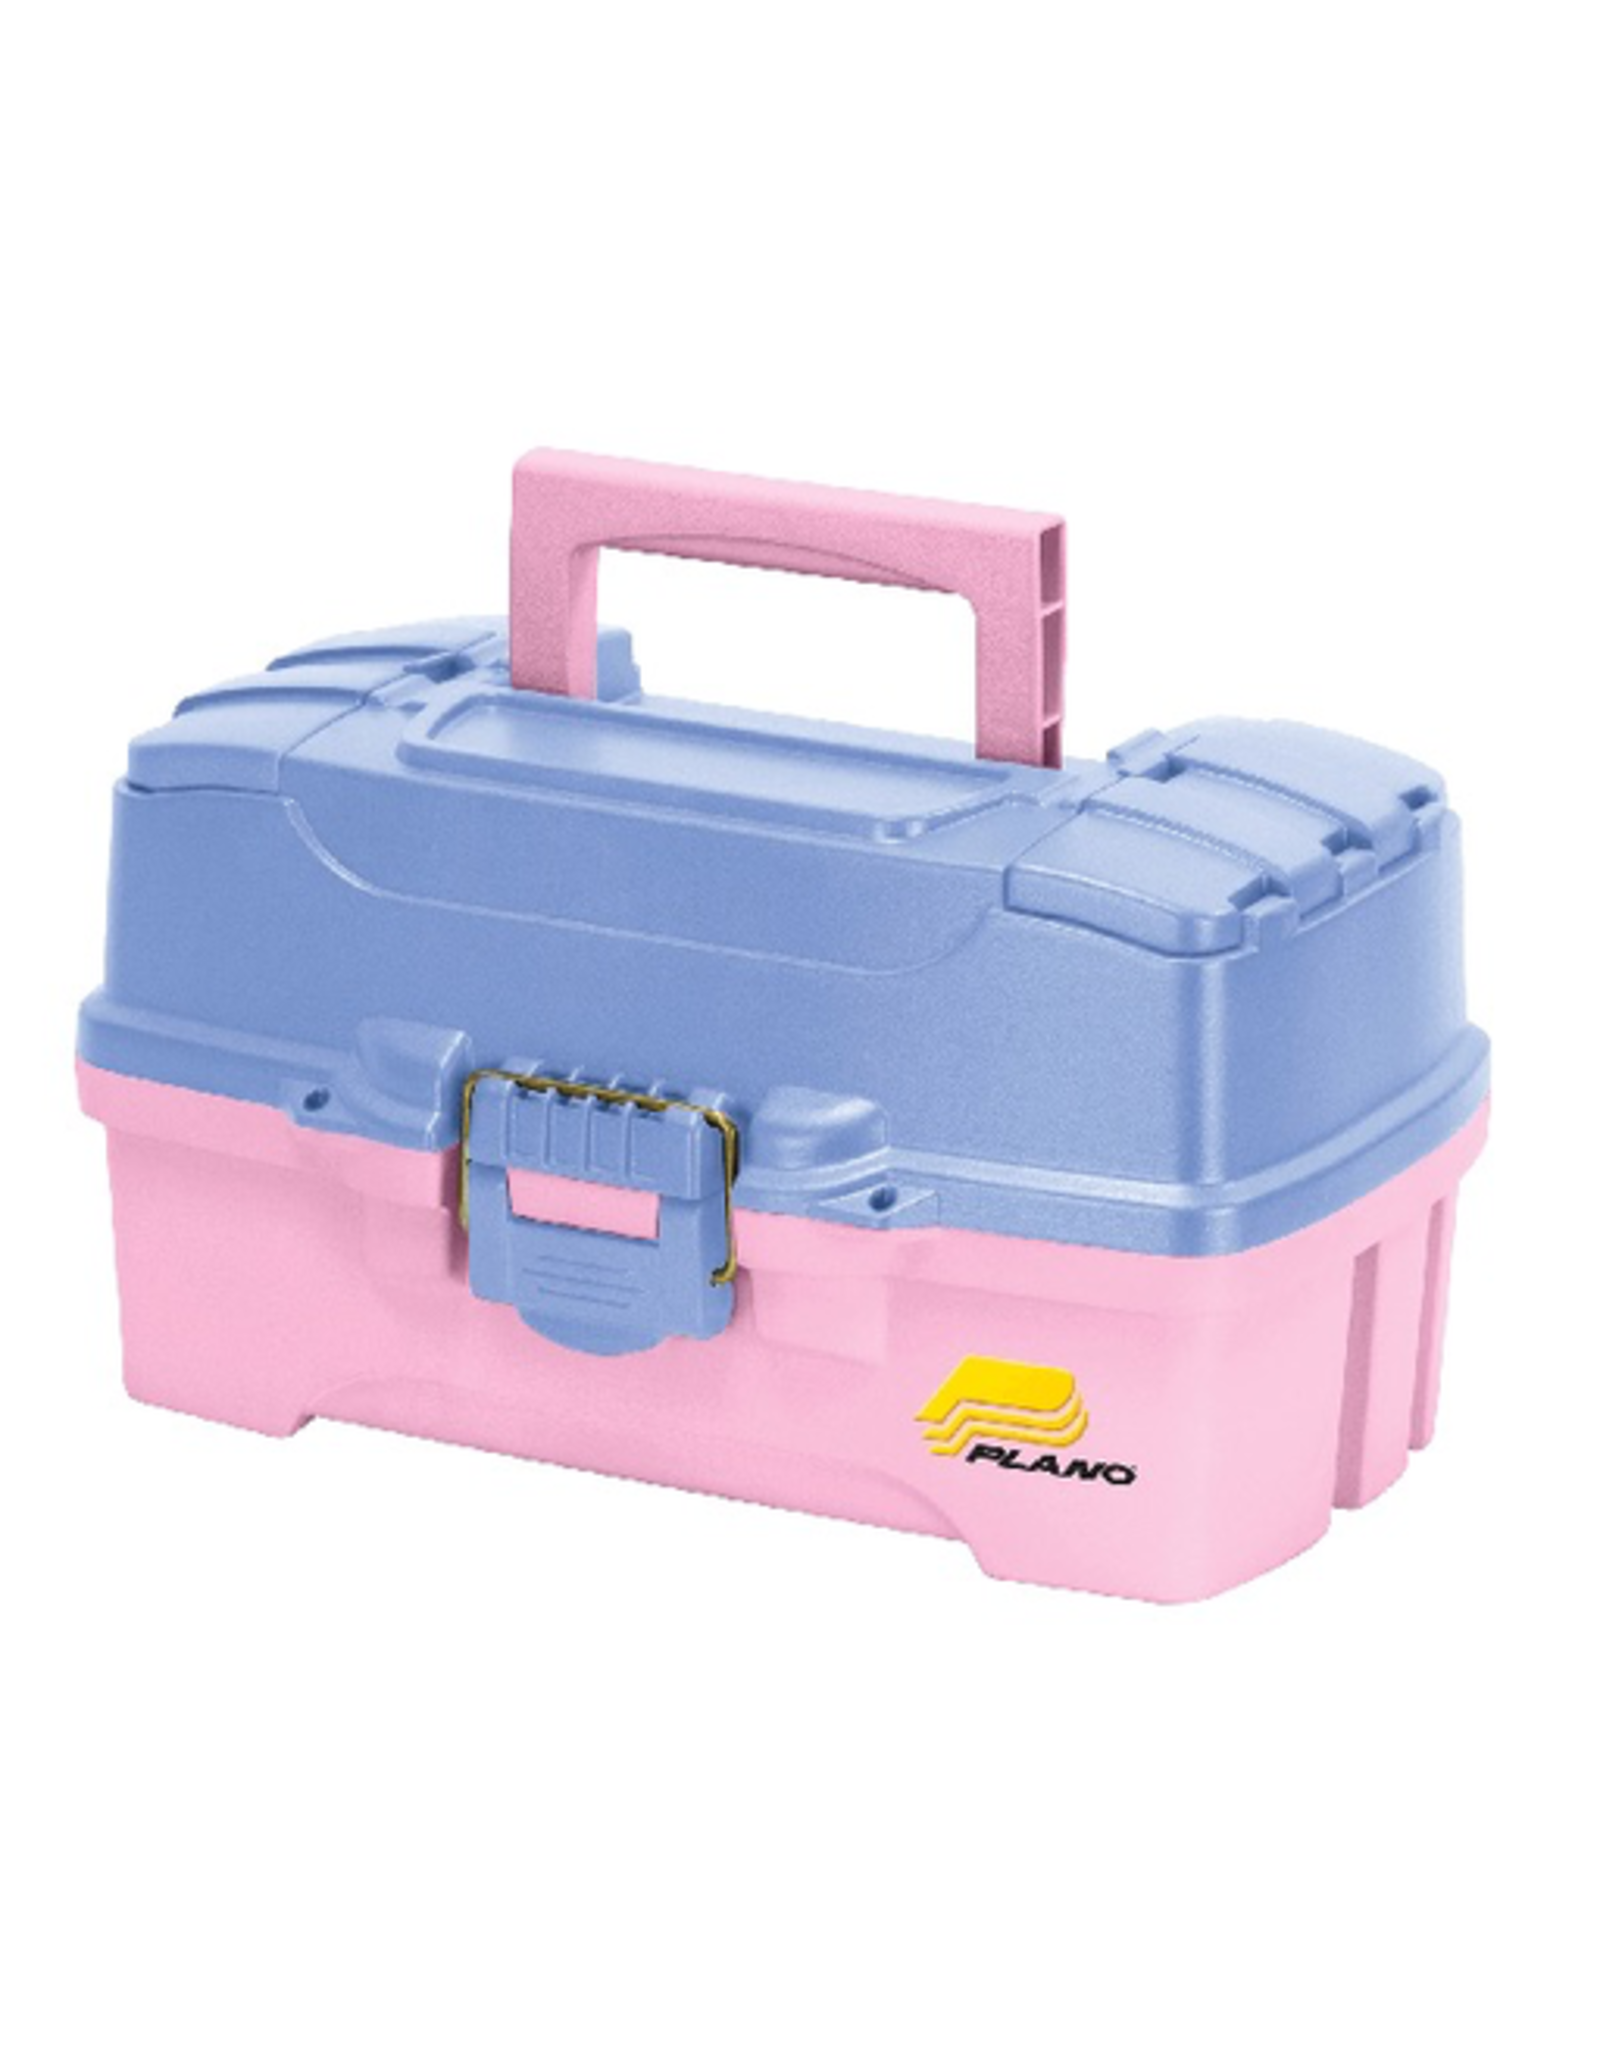 Plano Plano Two-Tray Tackle Box - Pink